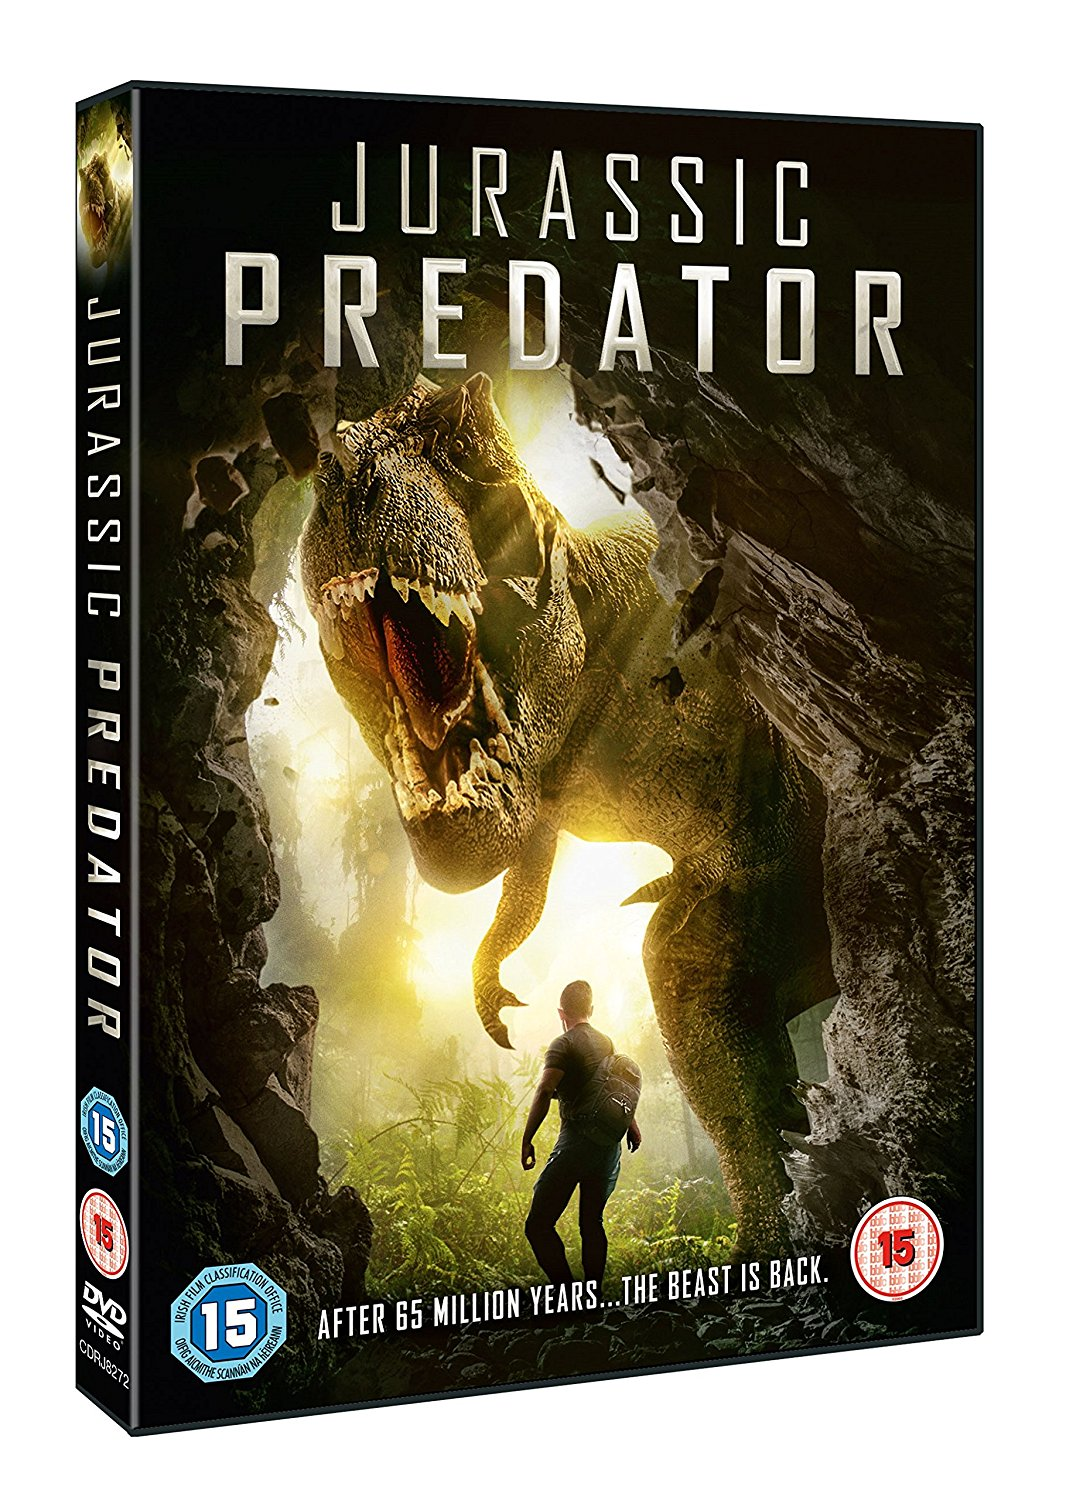 Jurassic Predator - UK DVD art